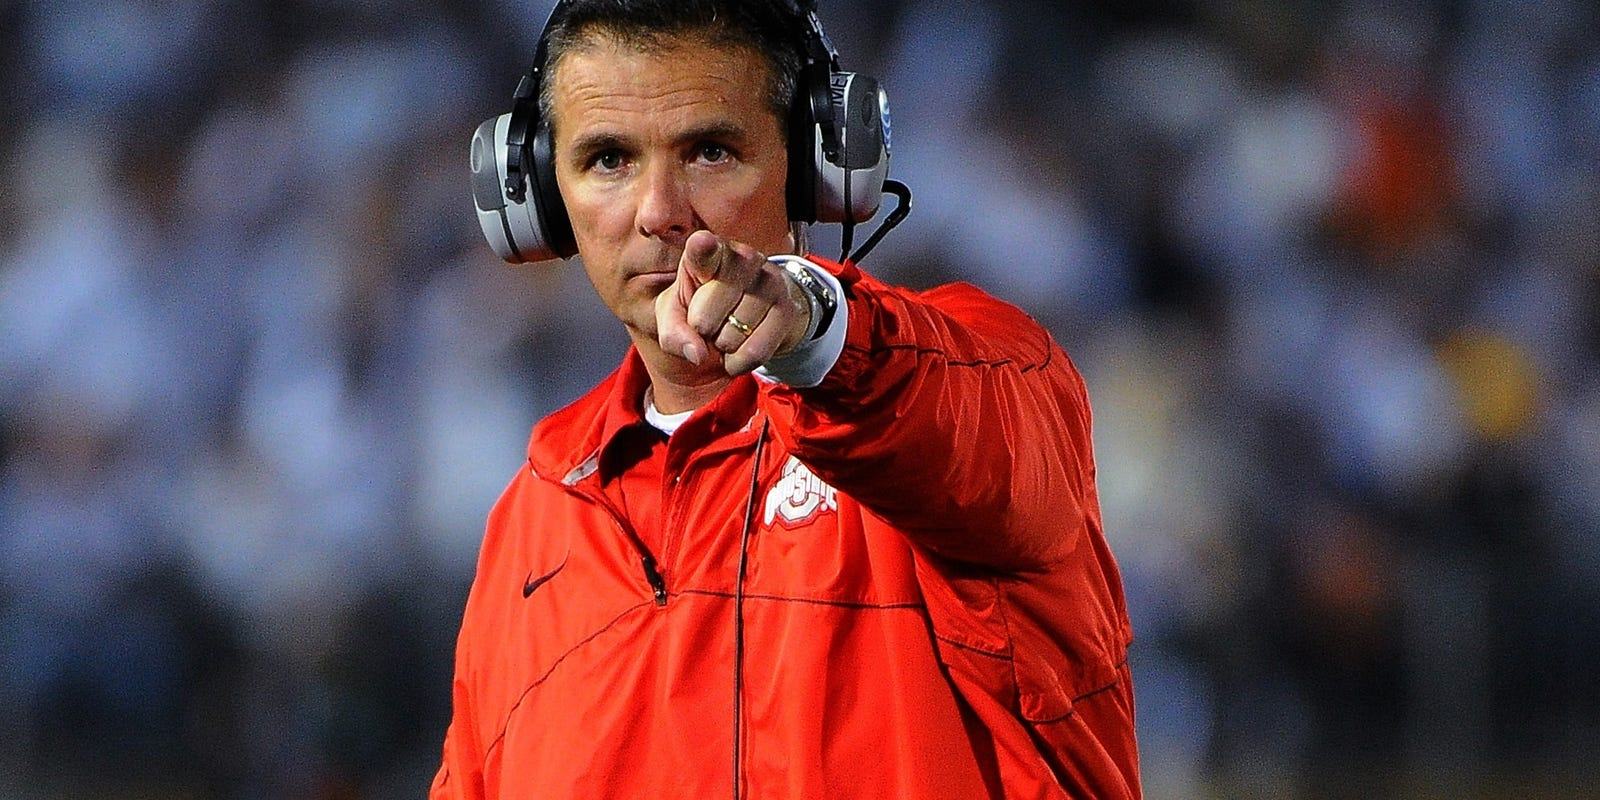 how urban meyer u0026 39 s daughter grades dad